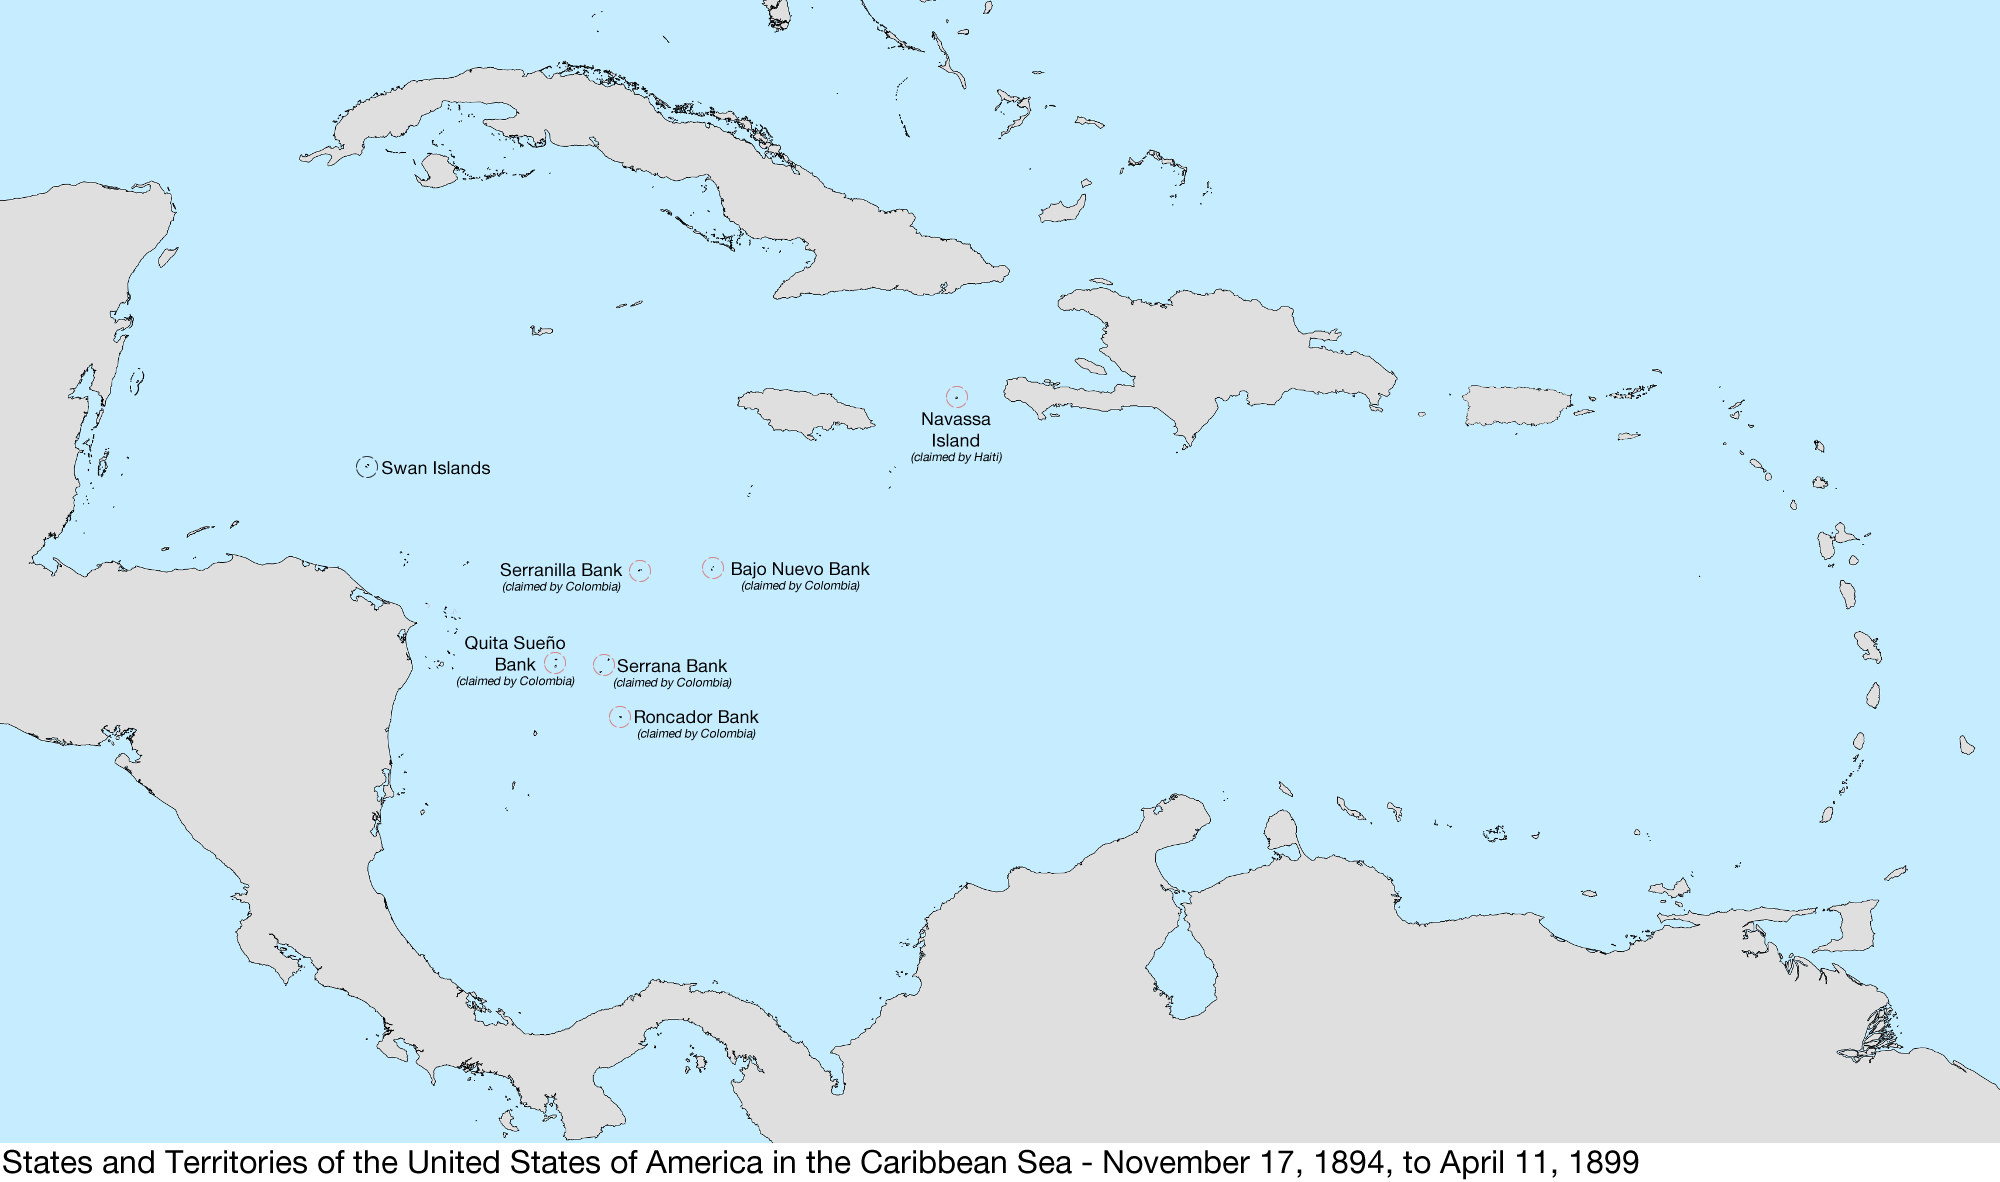 File United States Caribbean Map 1894 11 17 To 1899 04 11 Png